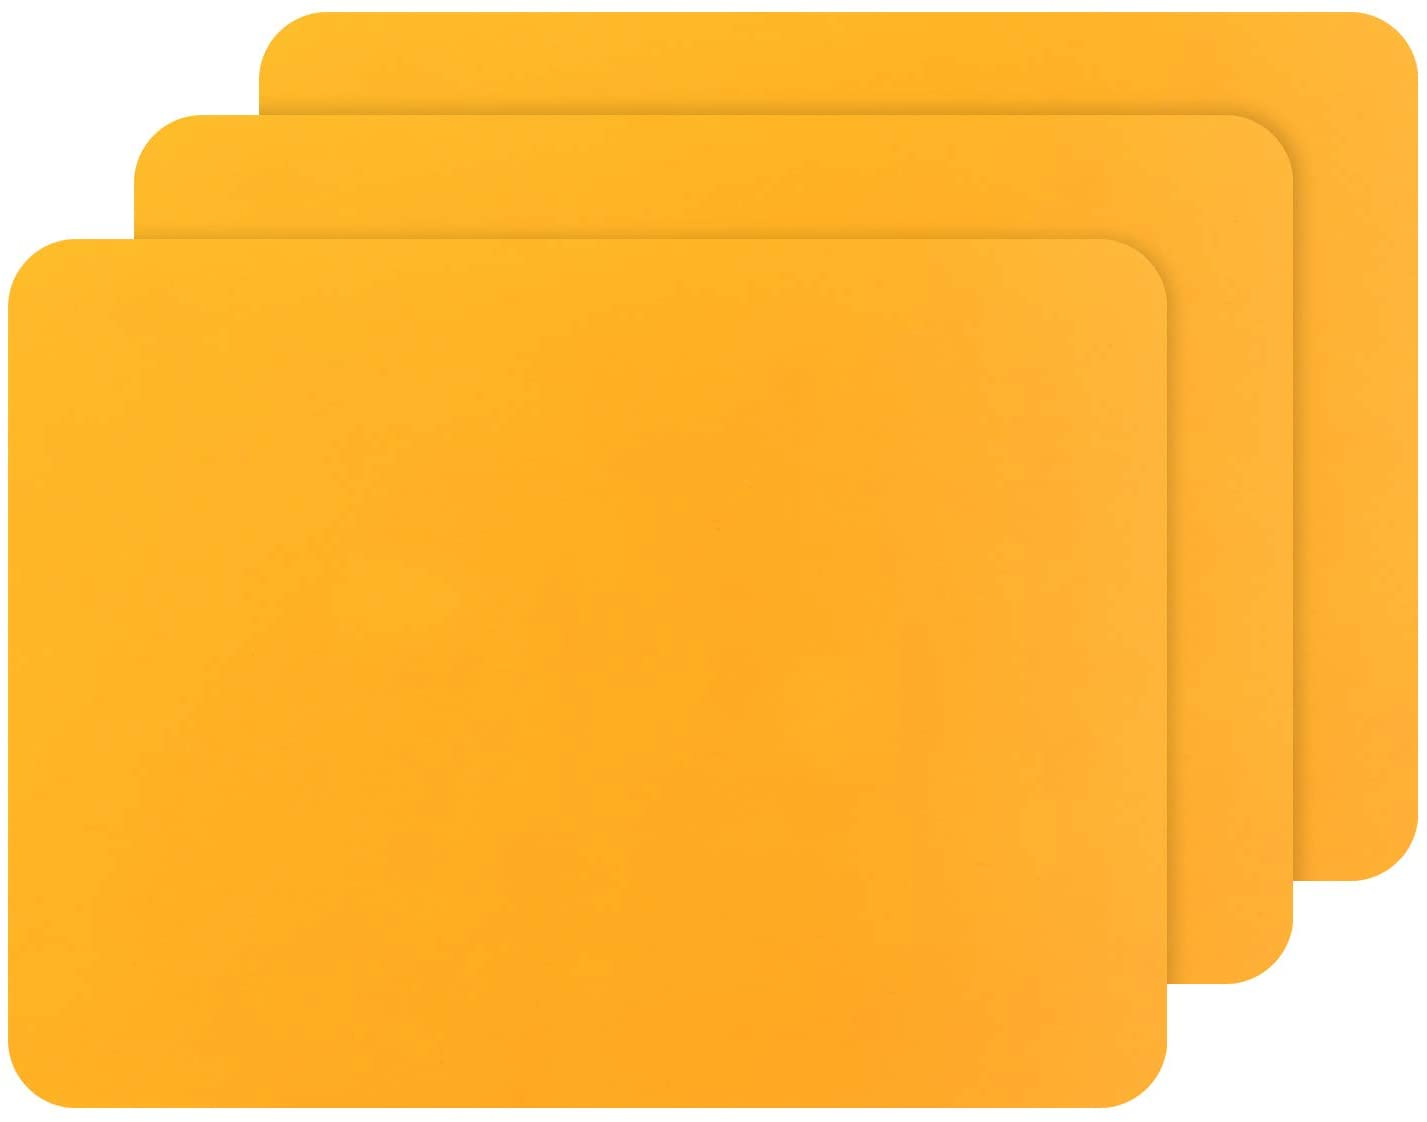 Gartful 3 PCS Silicone Sheet for Crafts, Resin Epoxy Casting Molds Mat, Multipurpose Countertop Protector Pad, Nonstick Nonskid Counter Table Cover Placemat, Heat Resistant, Orange (15.7 x 11.8 inches)